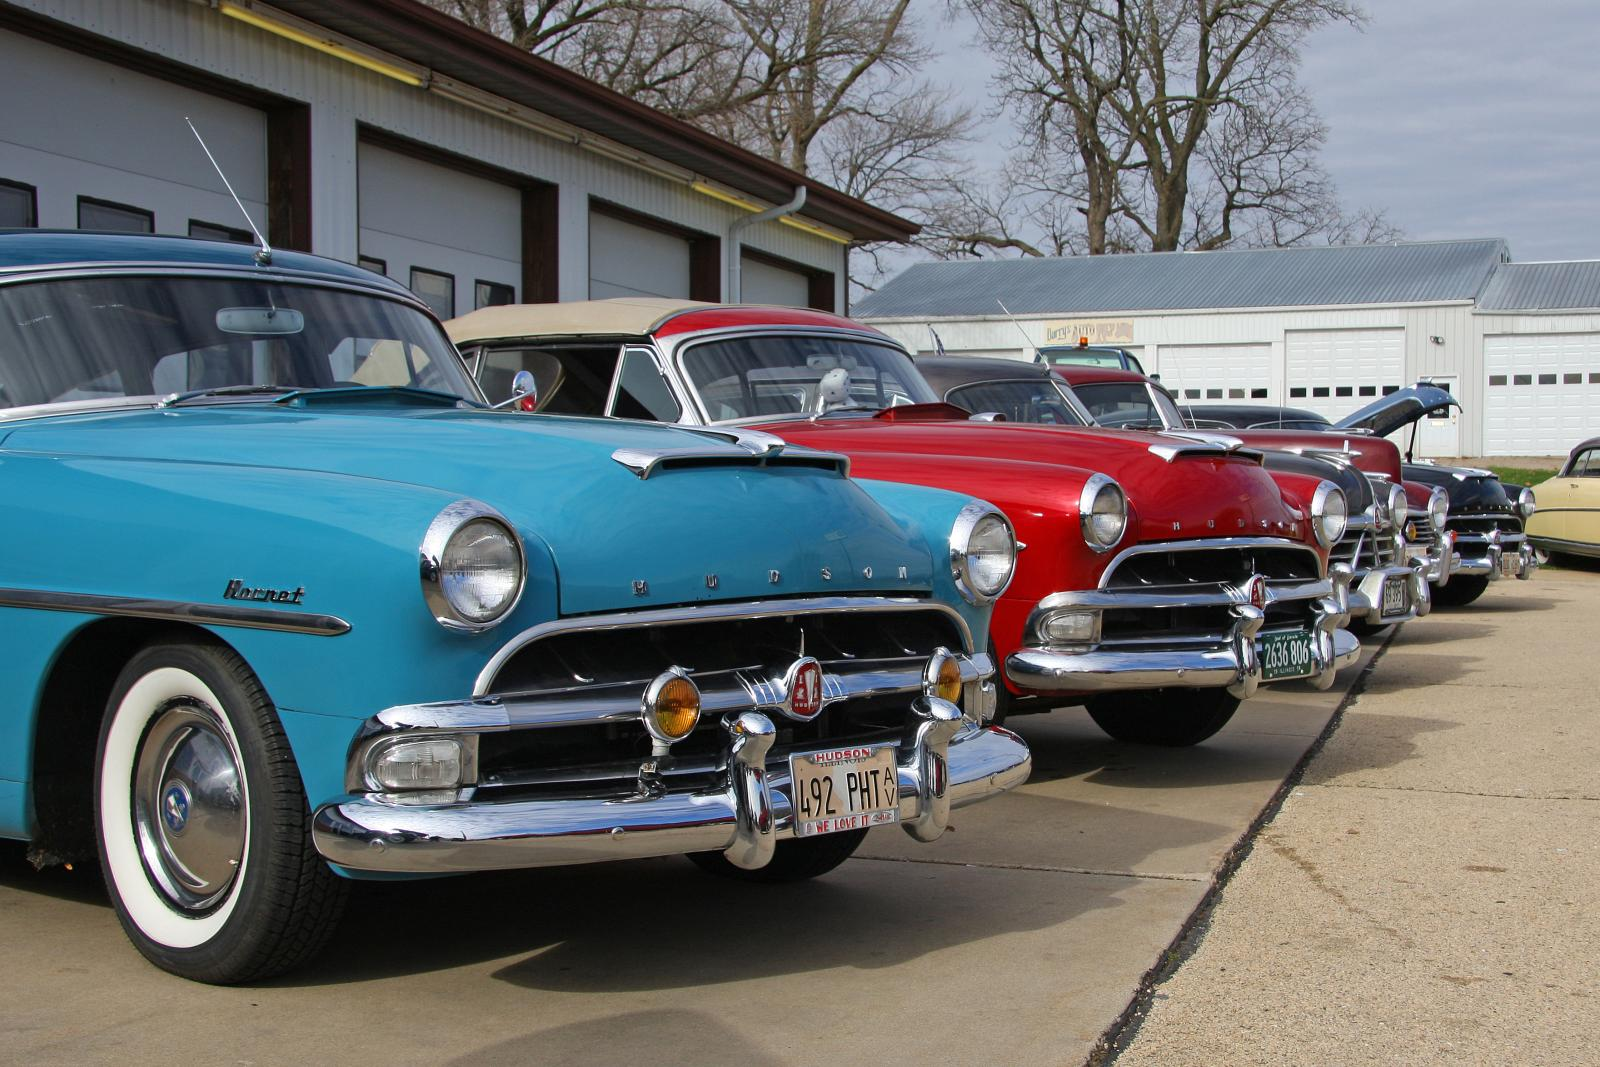 Snook's Dream Cars, Bowling Green, Ohio